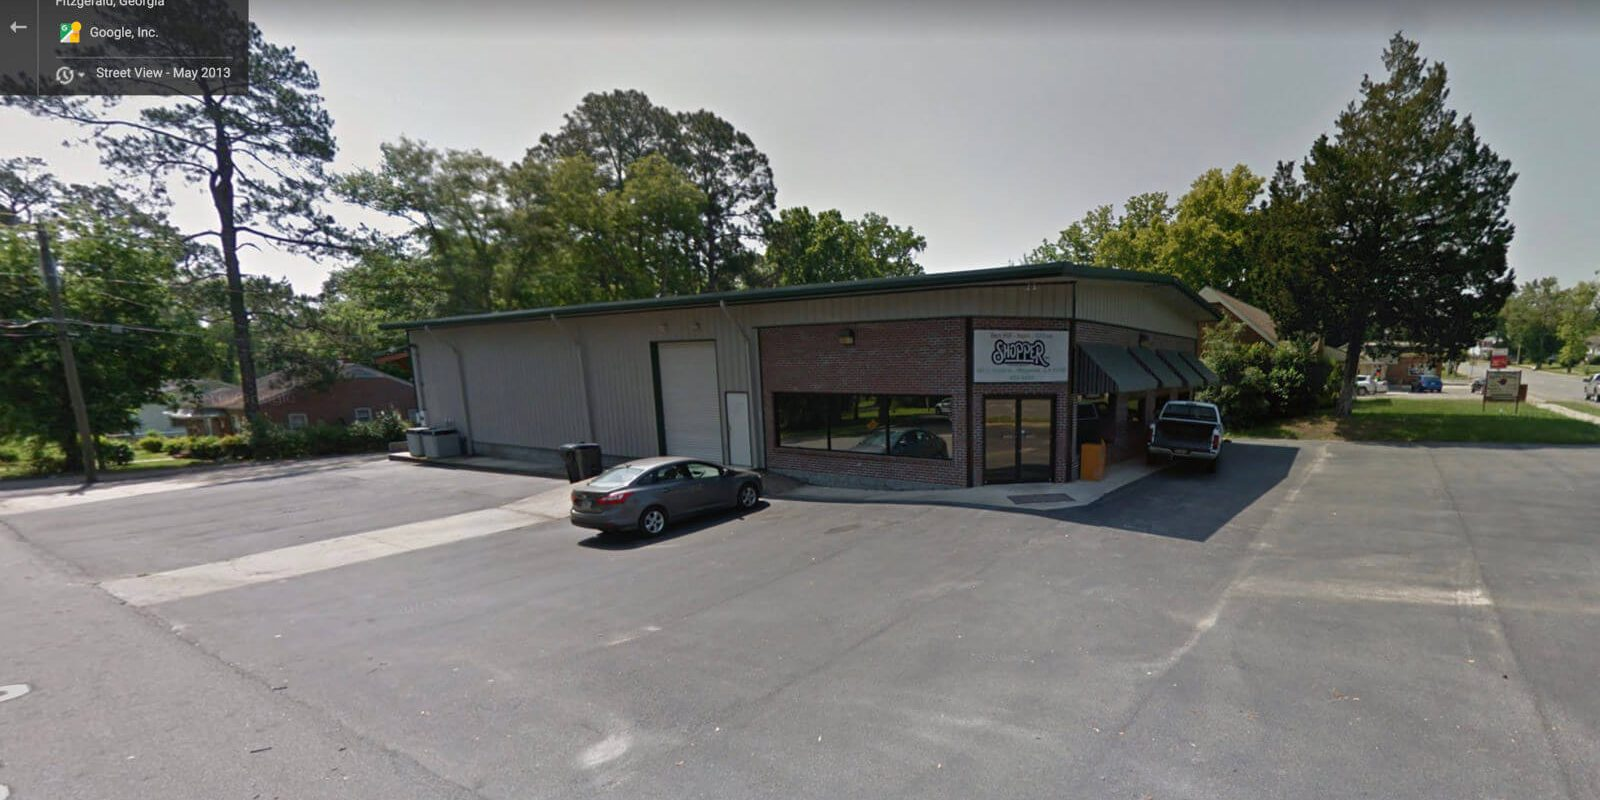 the exterior of the Georgia Shopper location in Fitzgerald, Georgia.